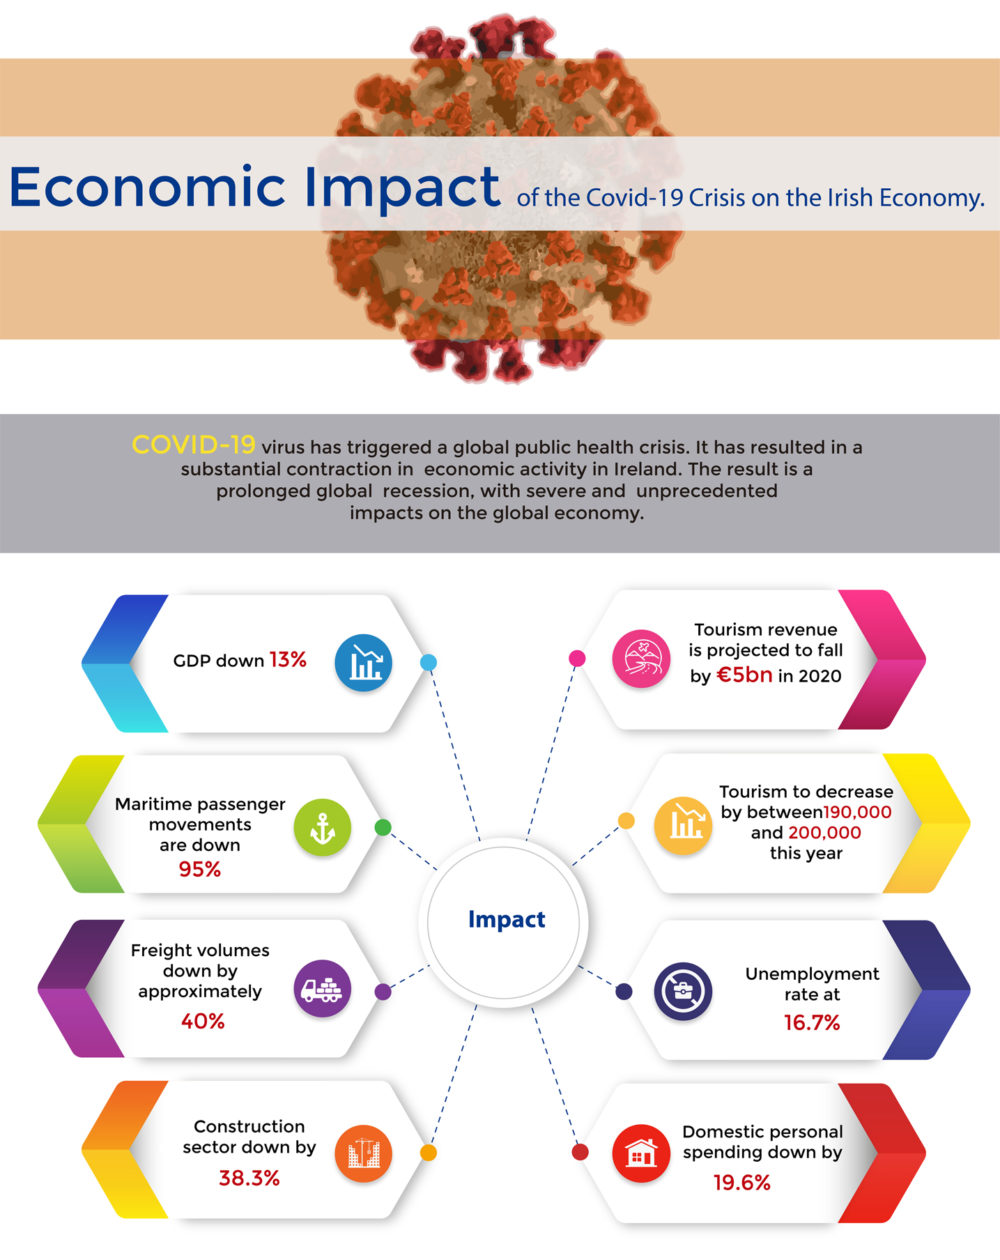 Economic Impact of the COVID-19 Crisis on the Irish Economy